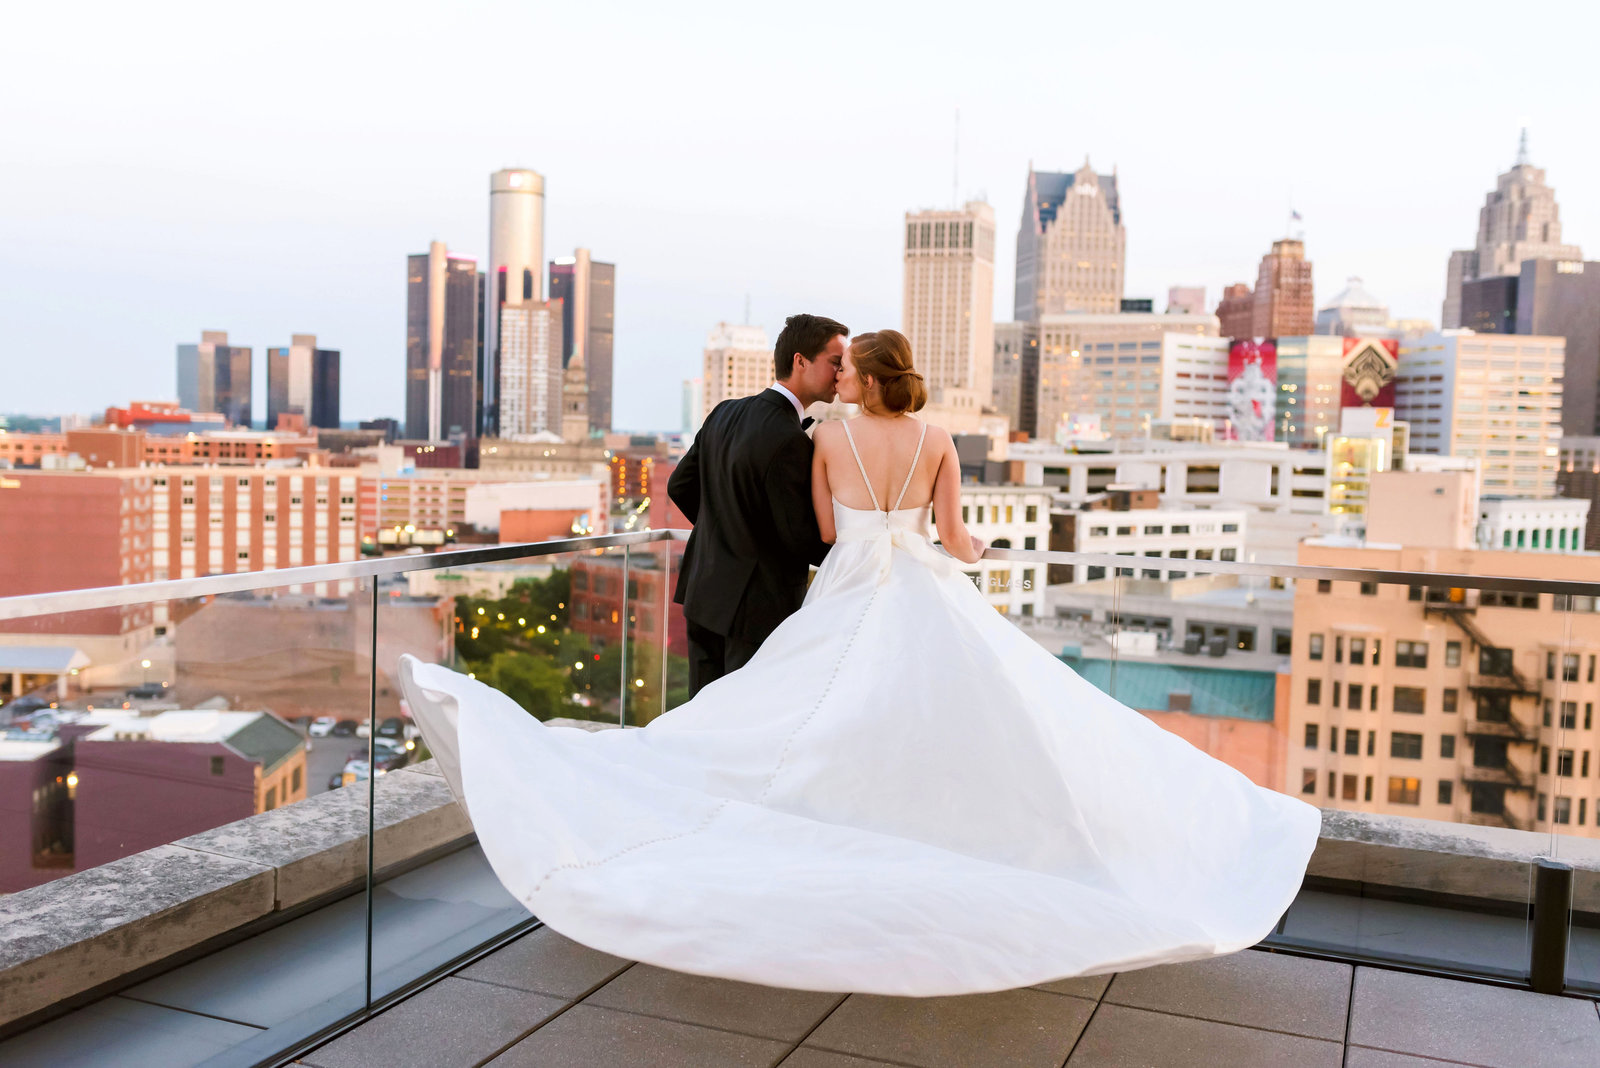 Wedding photo of a bride and groom on the roof of the DAC with the Detroit skyline